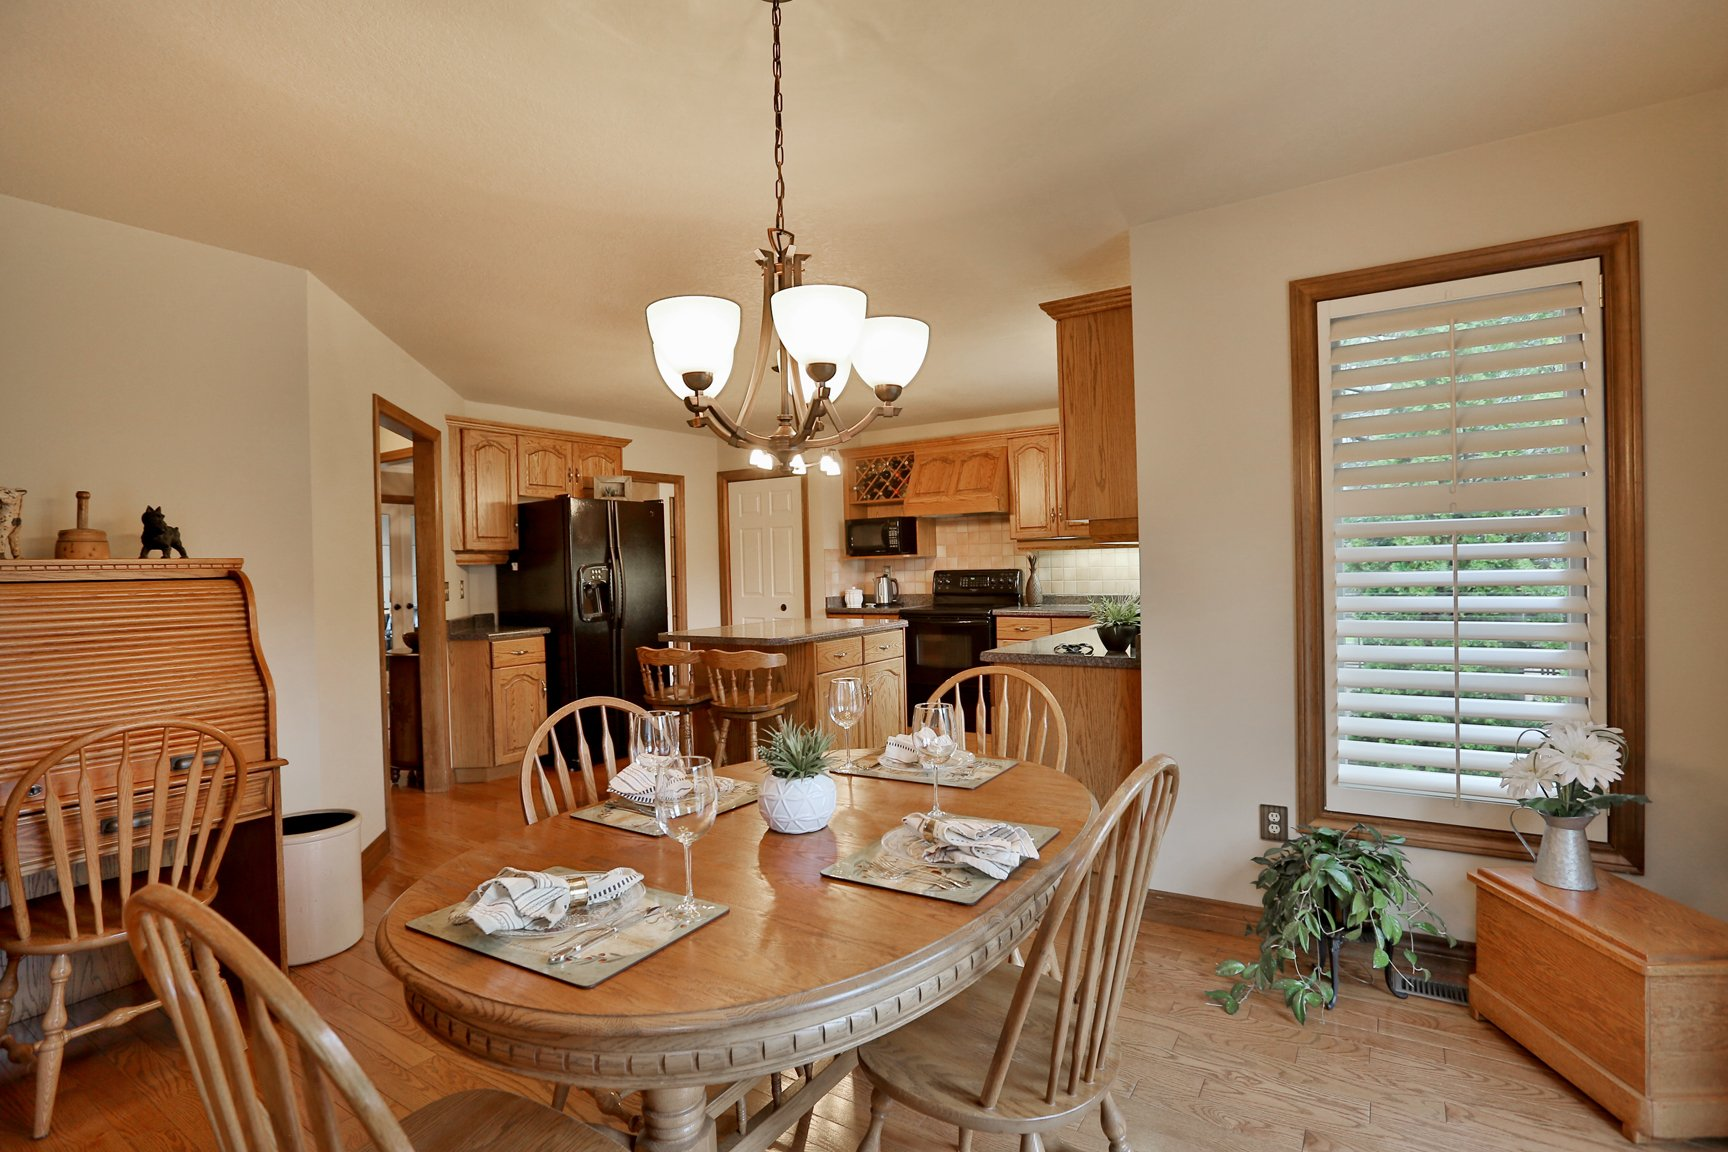 85 Galley kitchen eatin - Recently SOLD in Ancaster